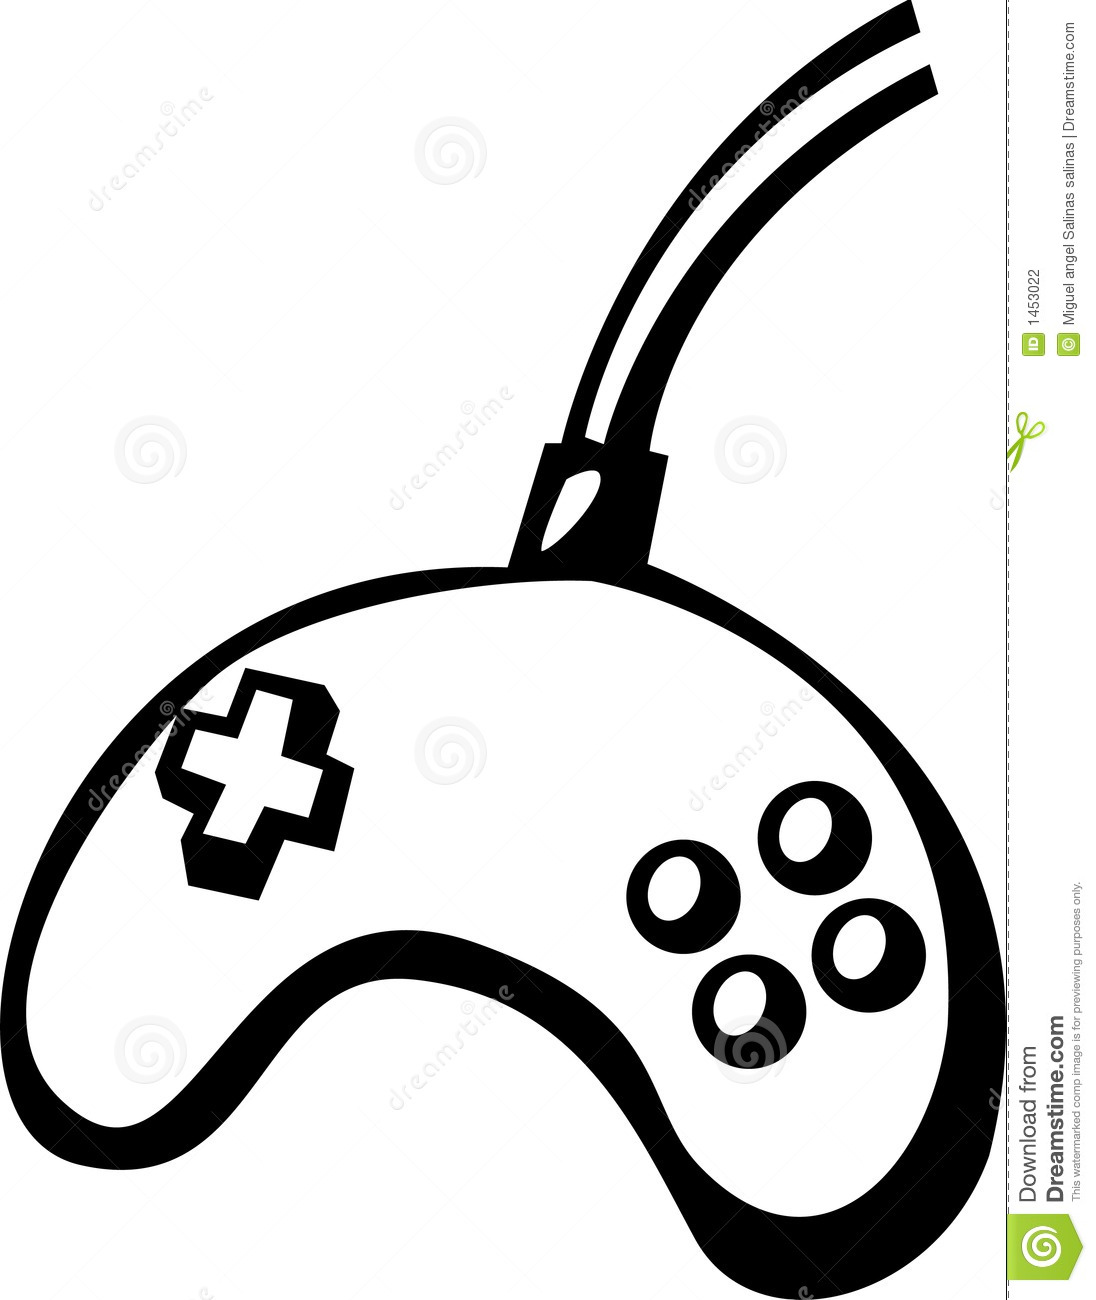 1096x1300 Controller Clipart Video Game Controller